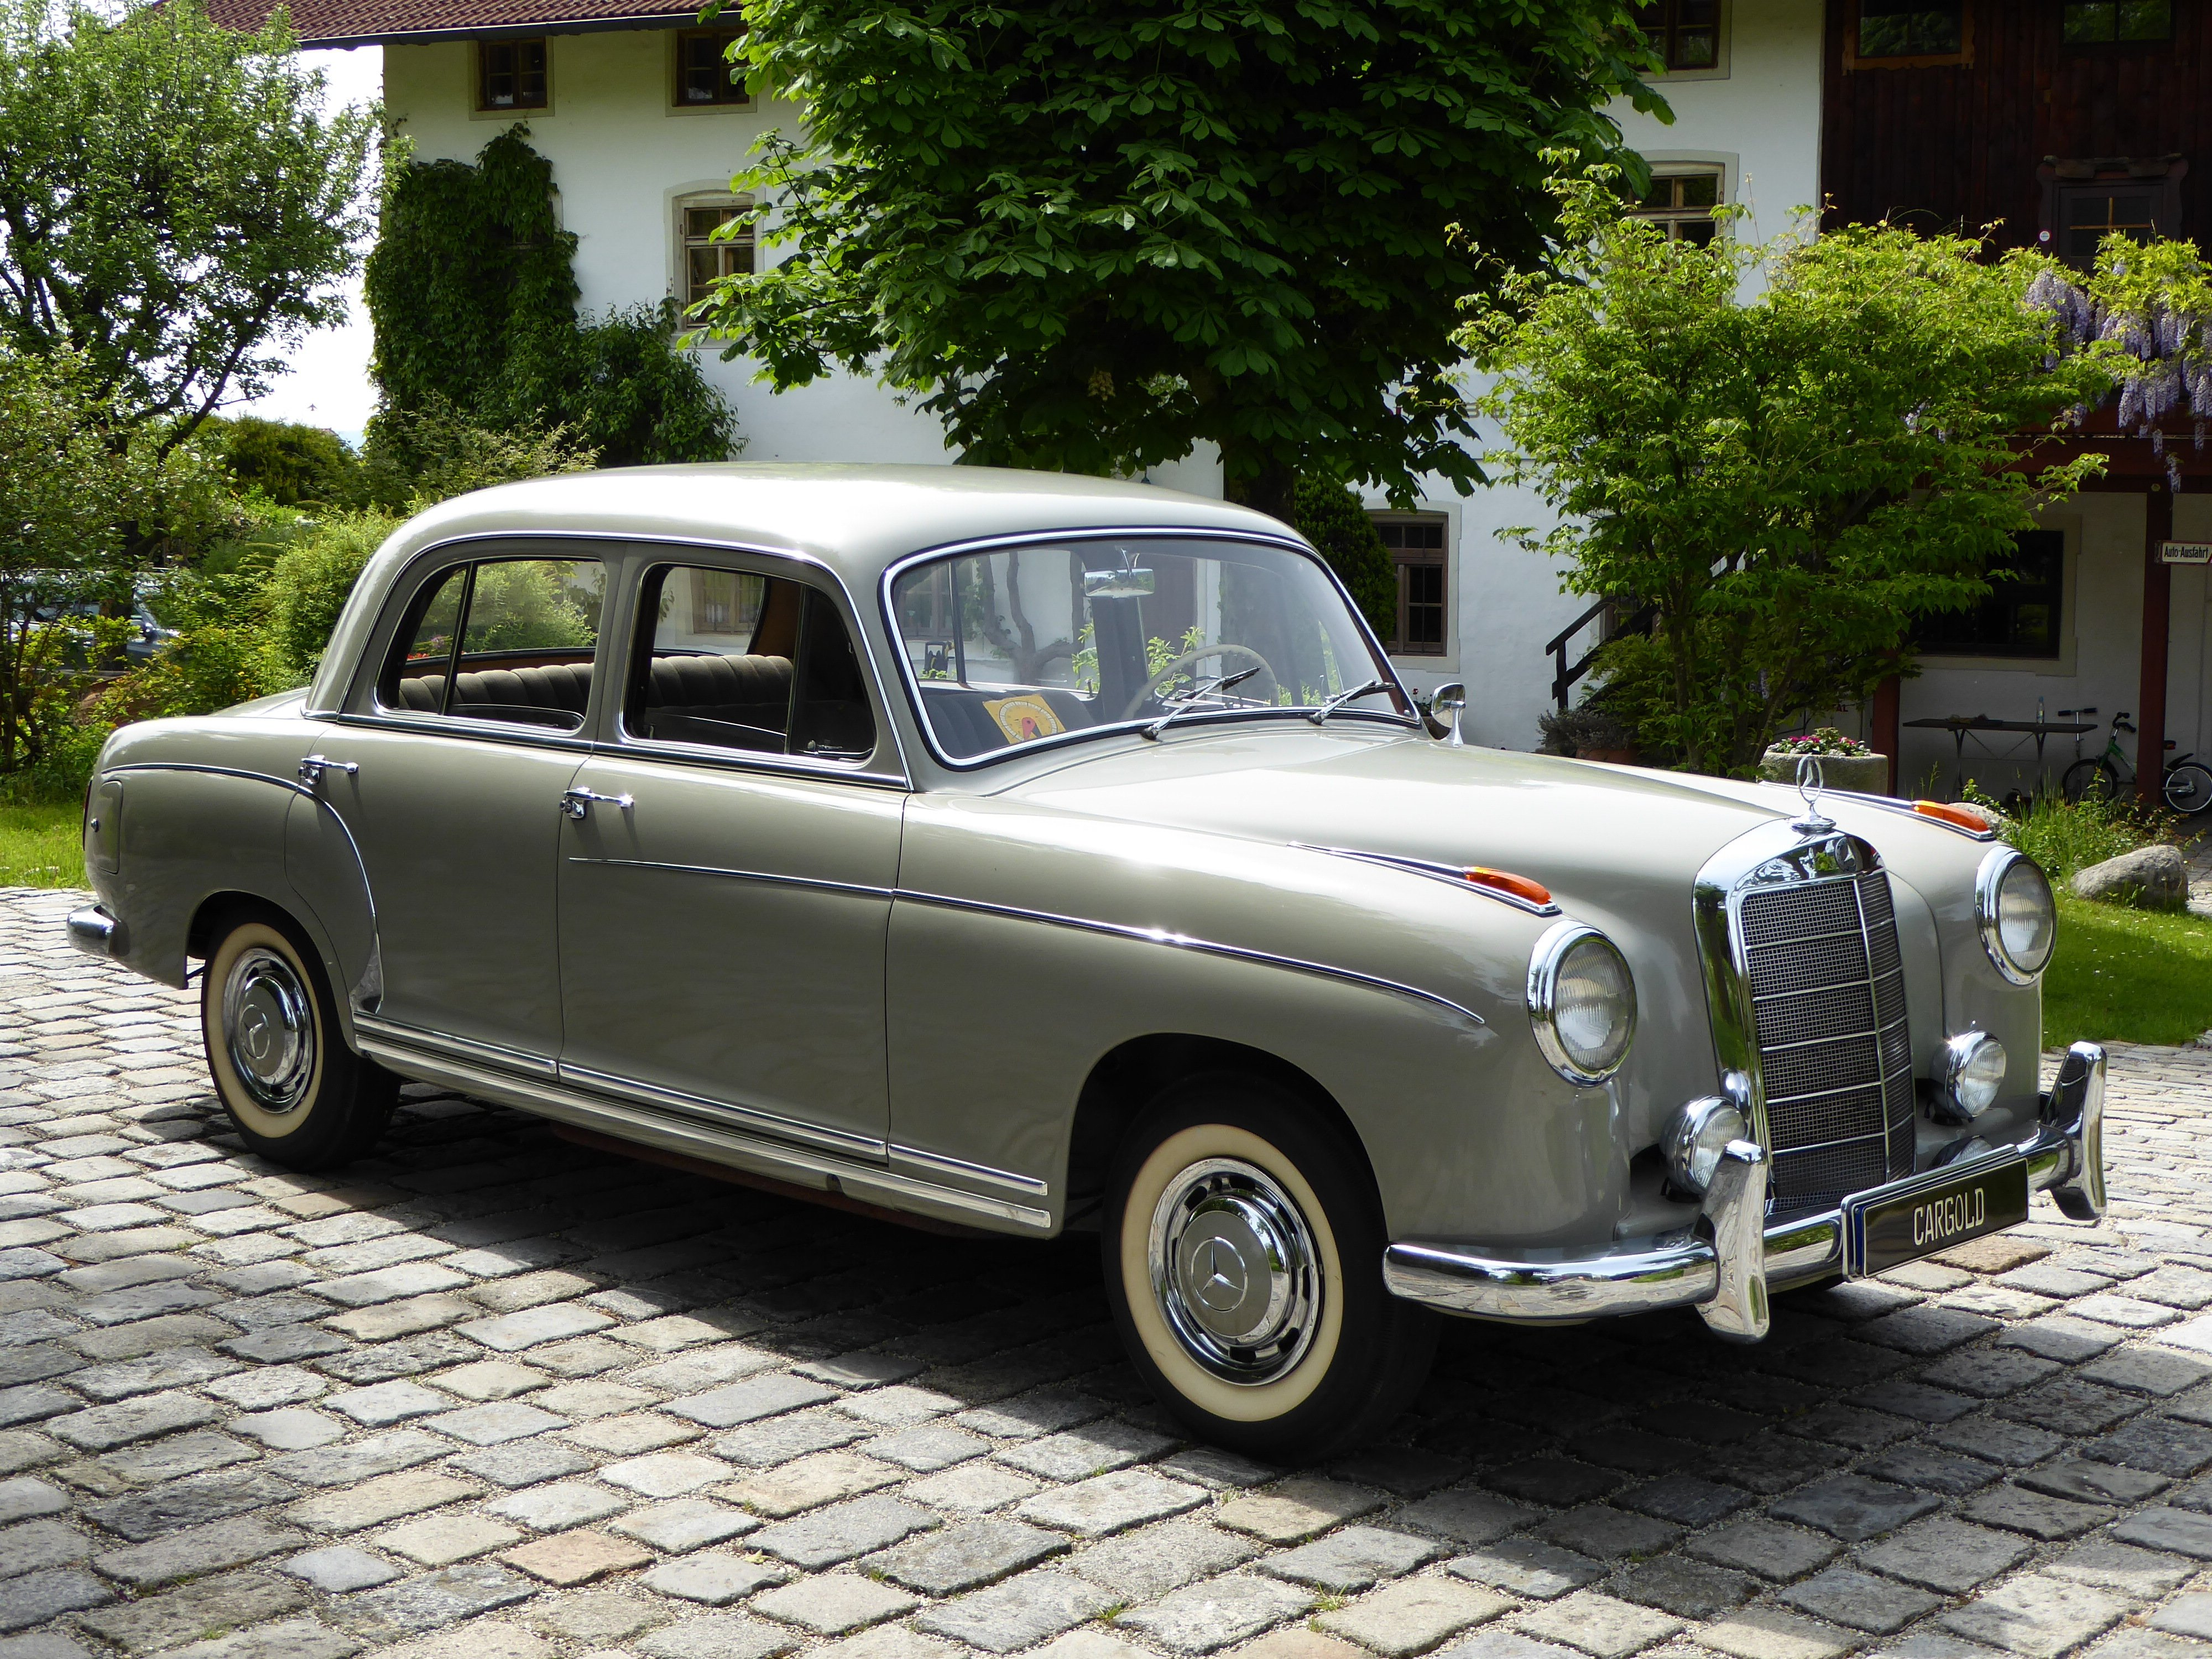 1958 mercedes benz 220s ponton limousine luxury retro f for 1958 mercedes benz 220s for sale